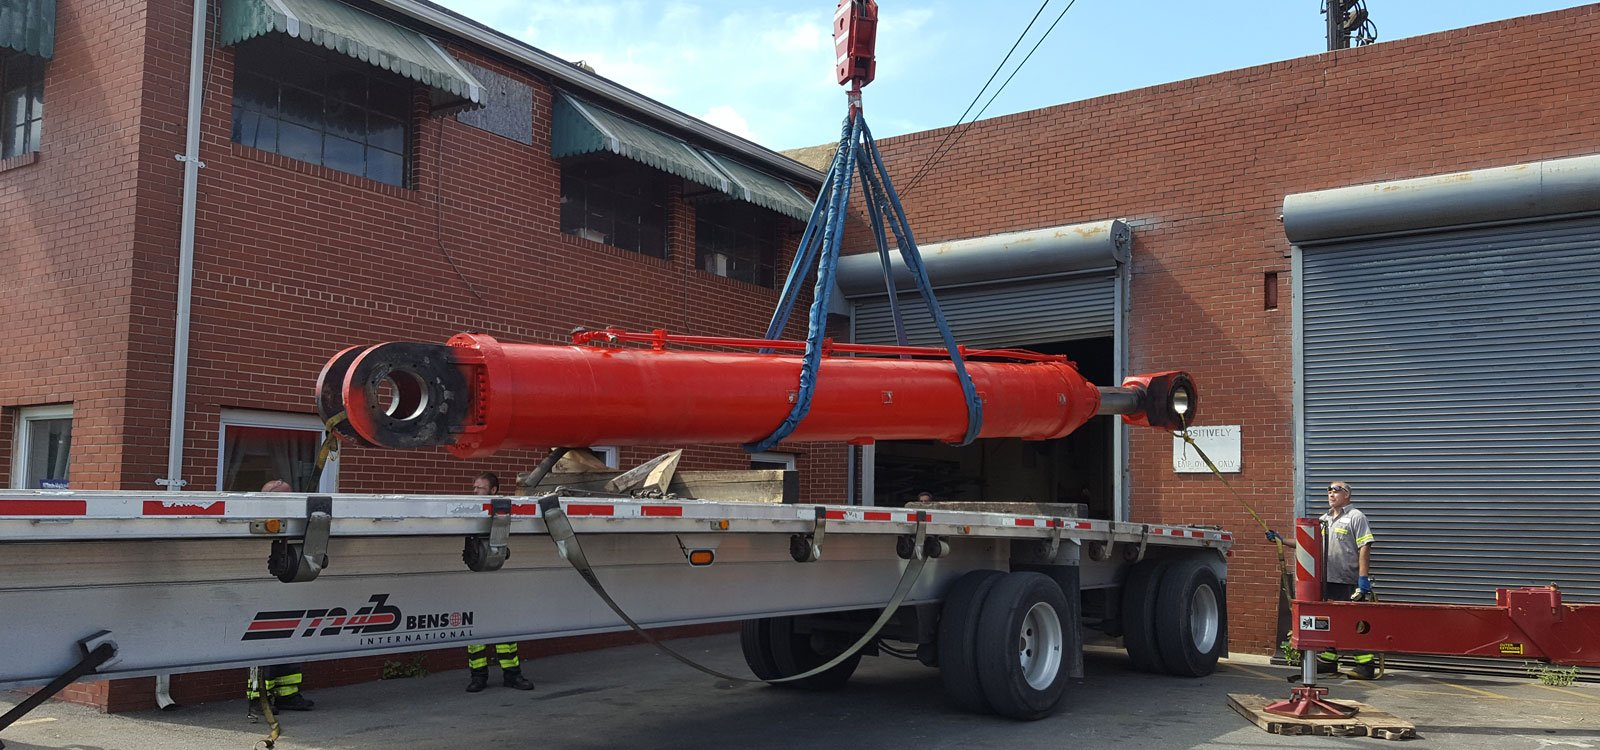 A-Tech - Maryland's leading ON-SITE hydraulic service company